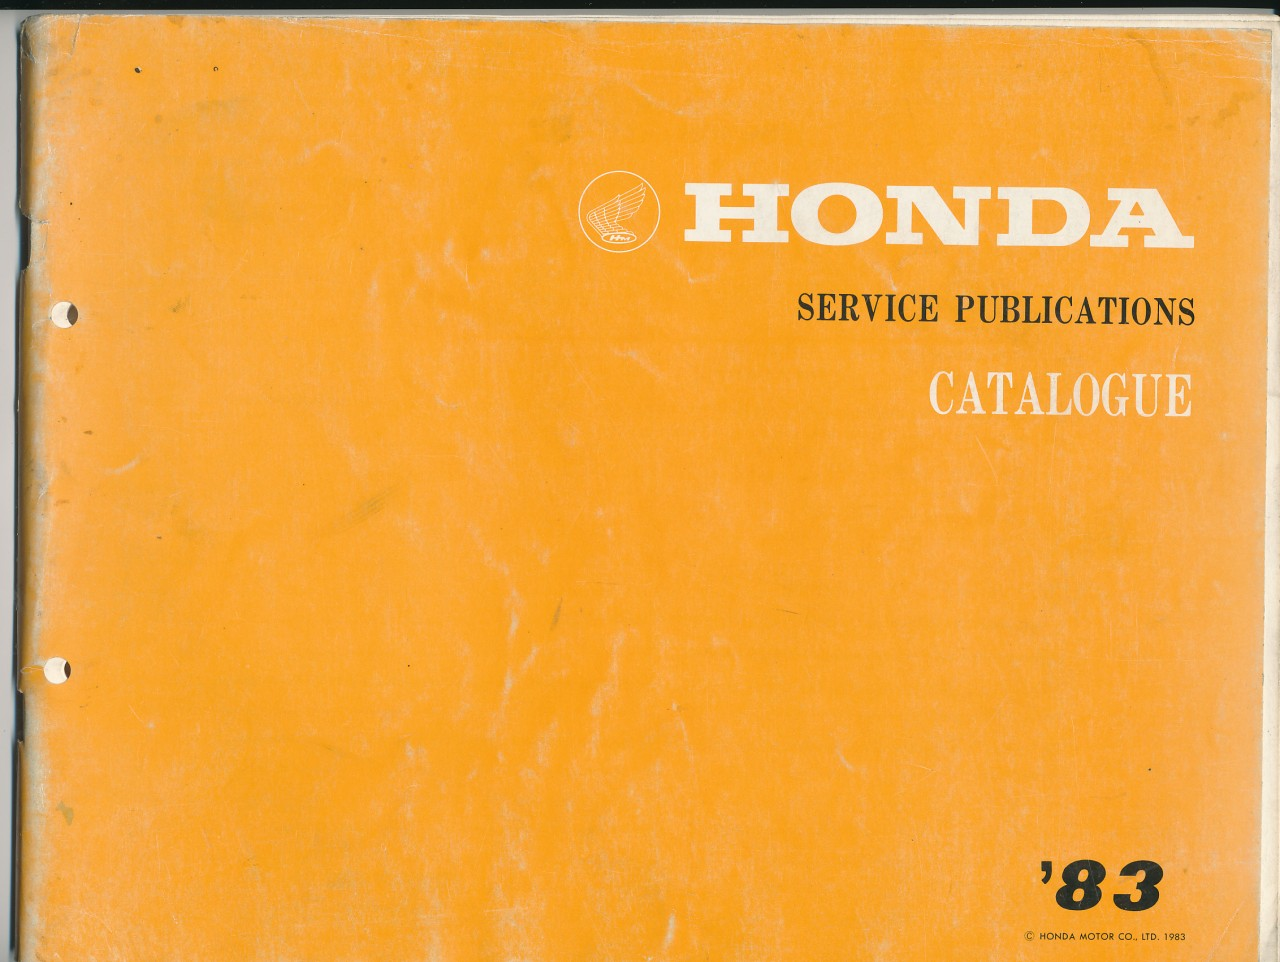 Honda-Service-Publications-Catalogue-83